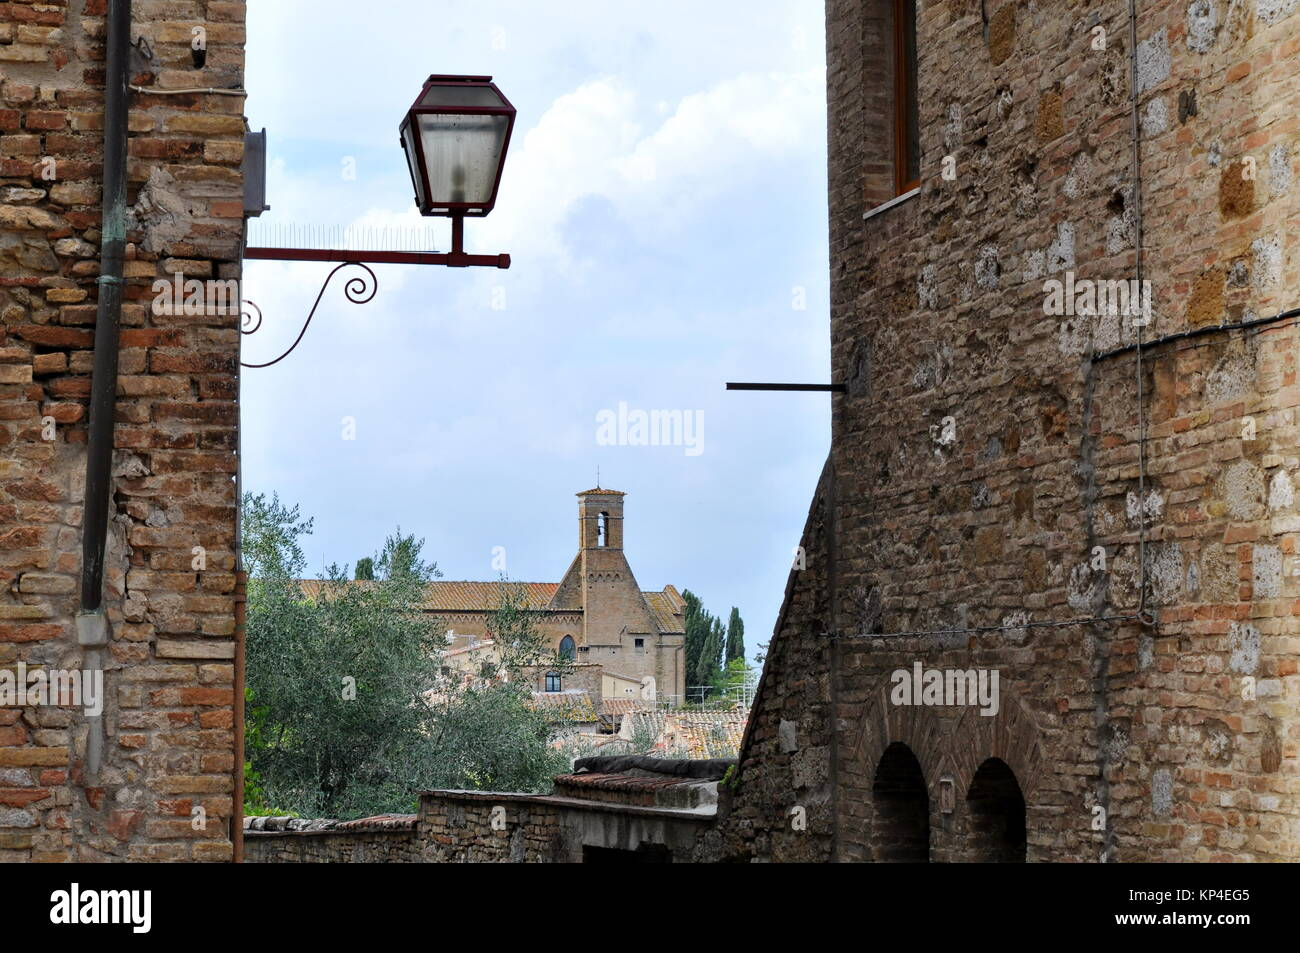 Stone and brick walls in the hill town of San Gimignano, Tuscany, Italy - Stock Image